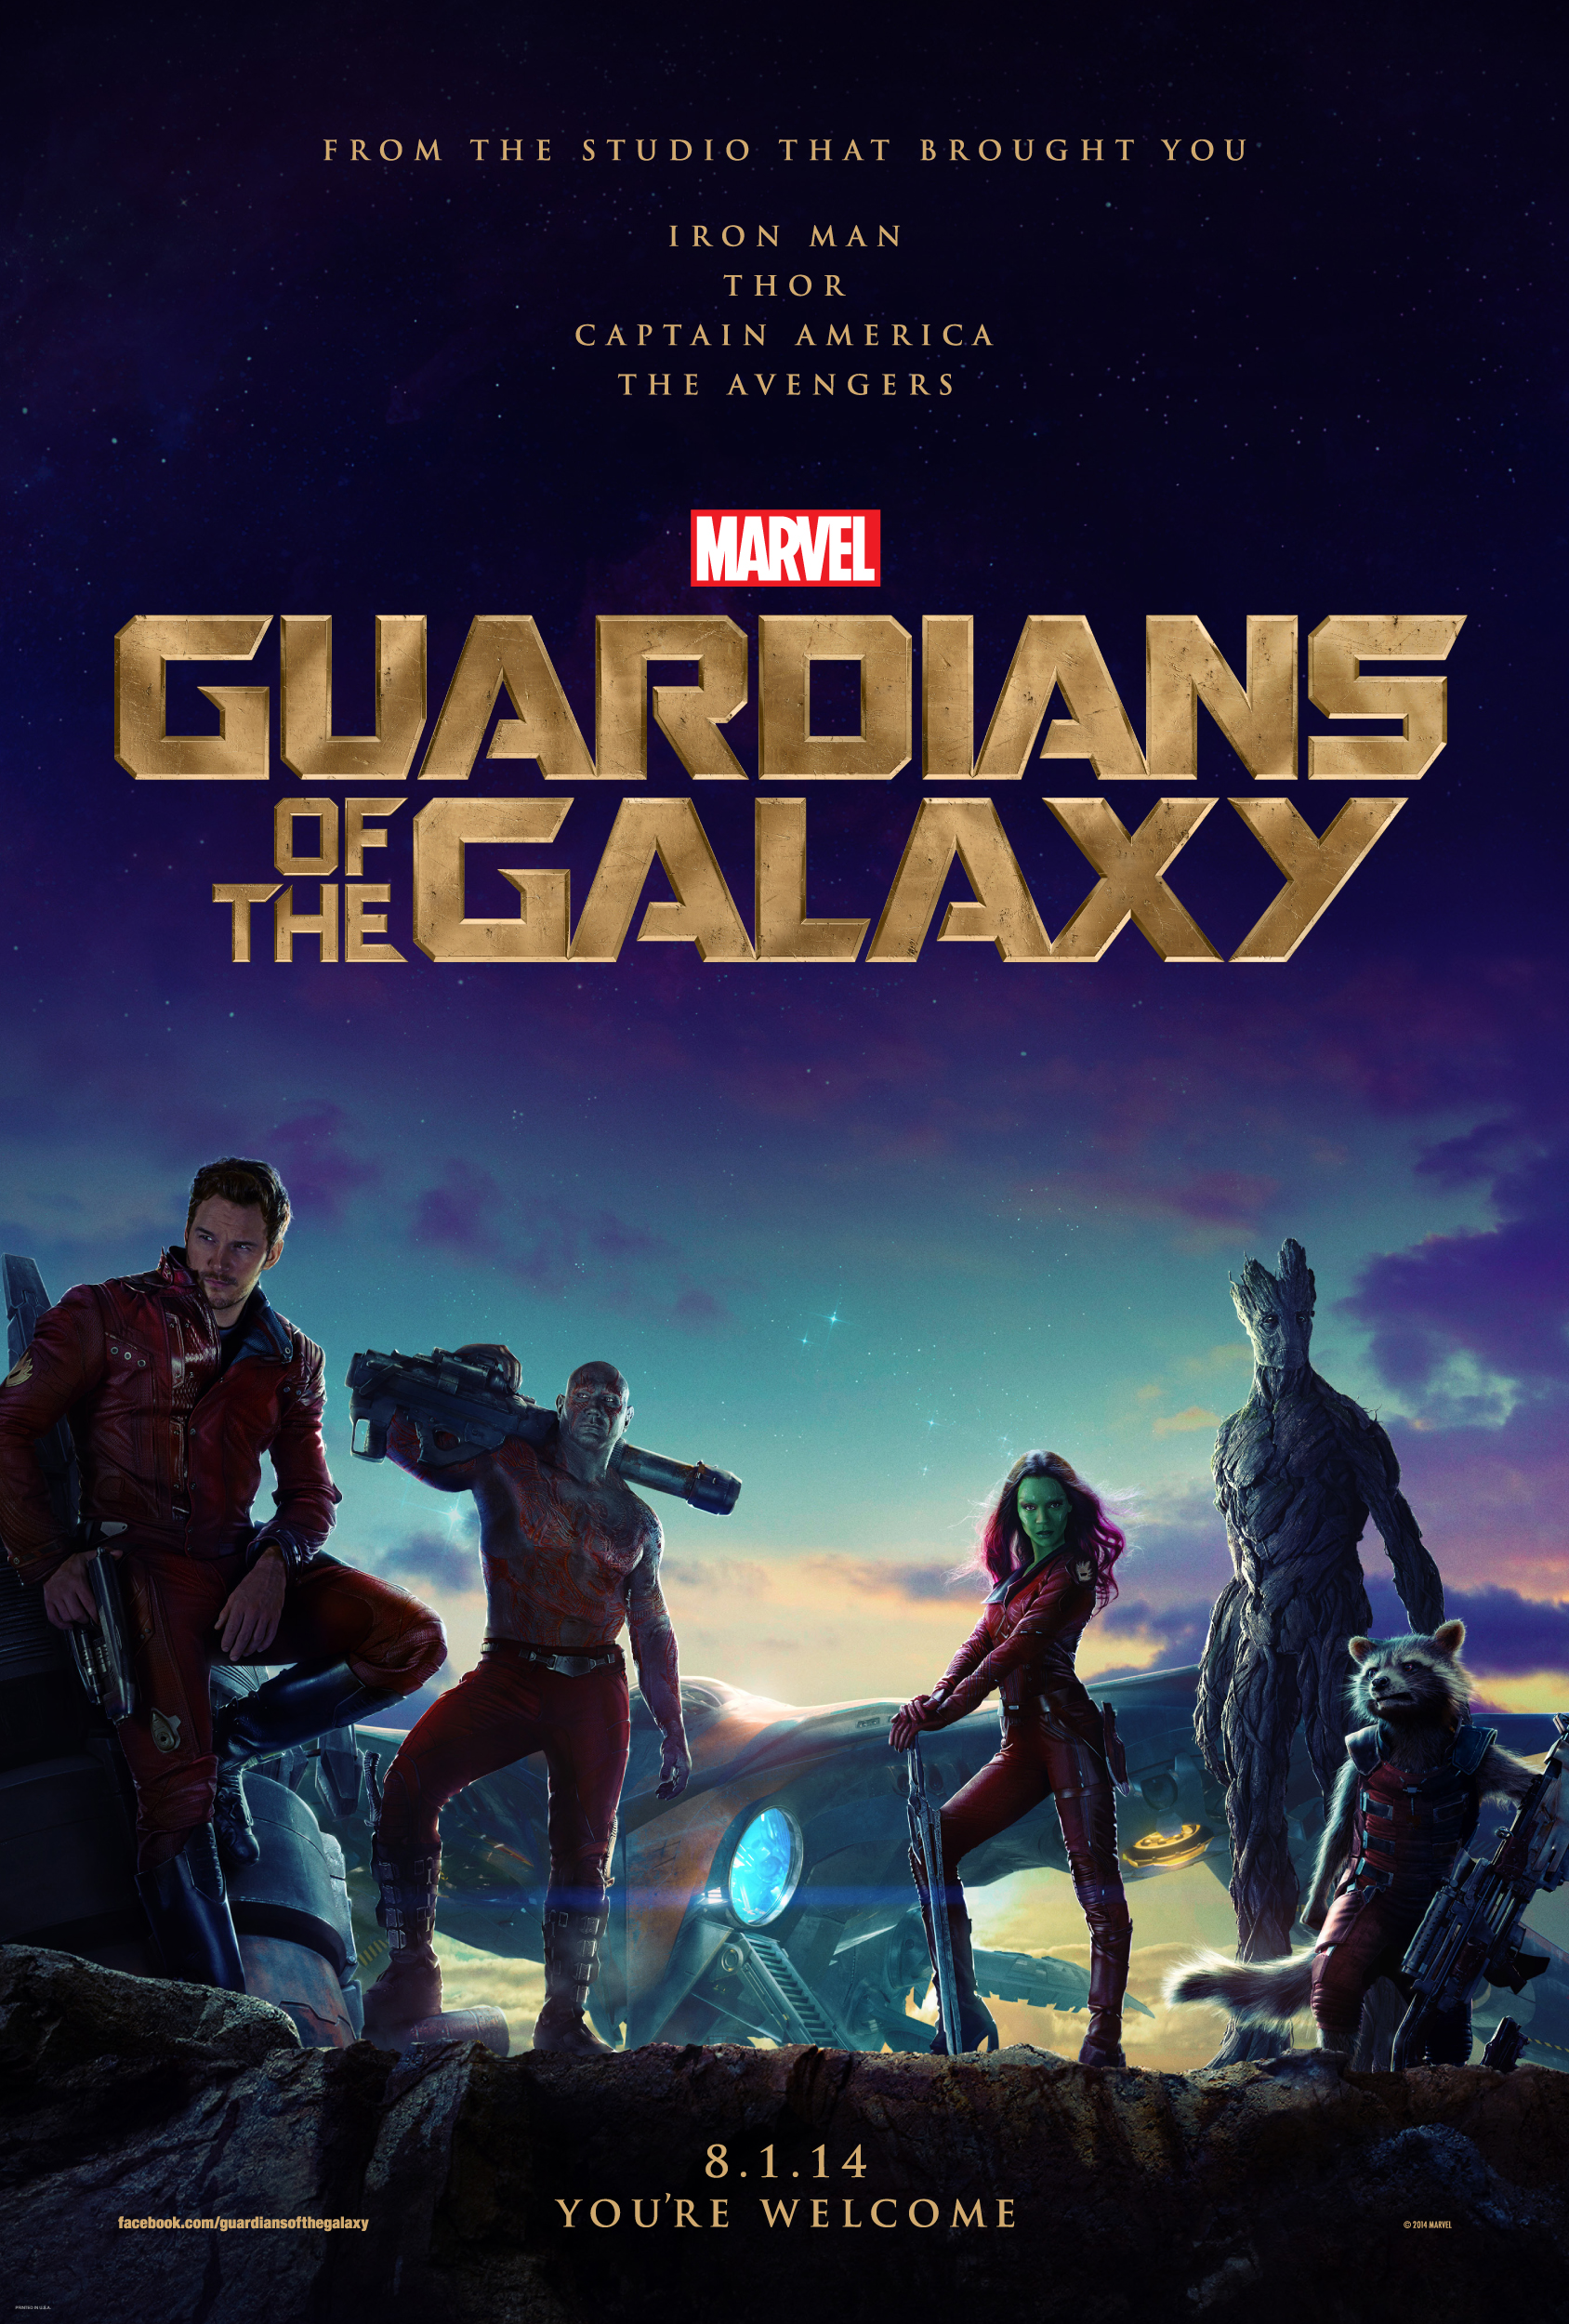 Guardians of the Galaxy opens in theaters August 1st! - SahmReviews.com #GuardiansOfTheGalaxy